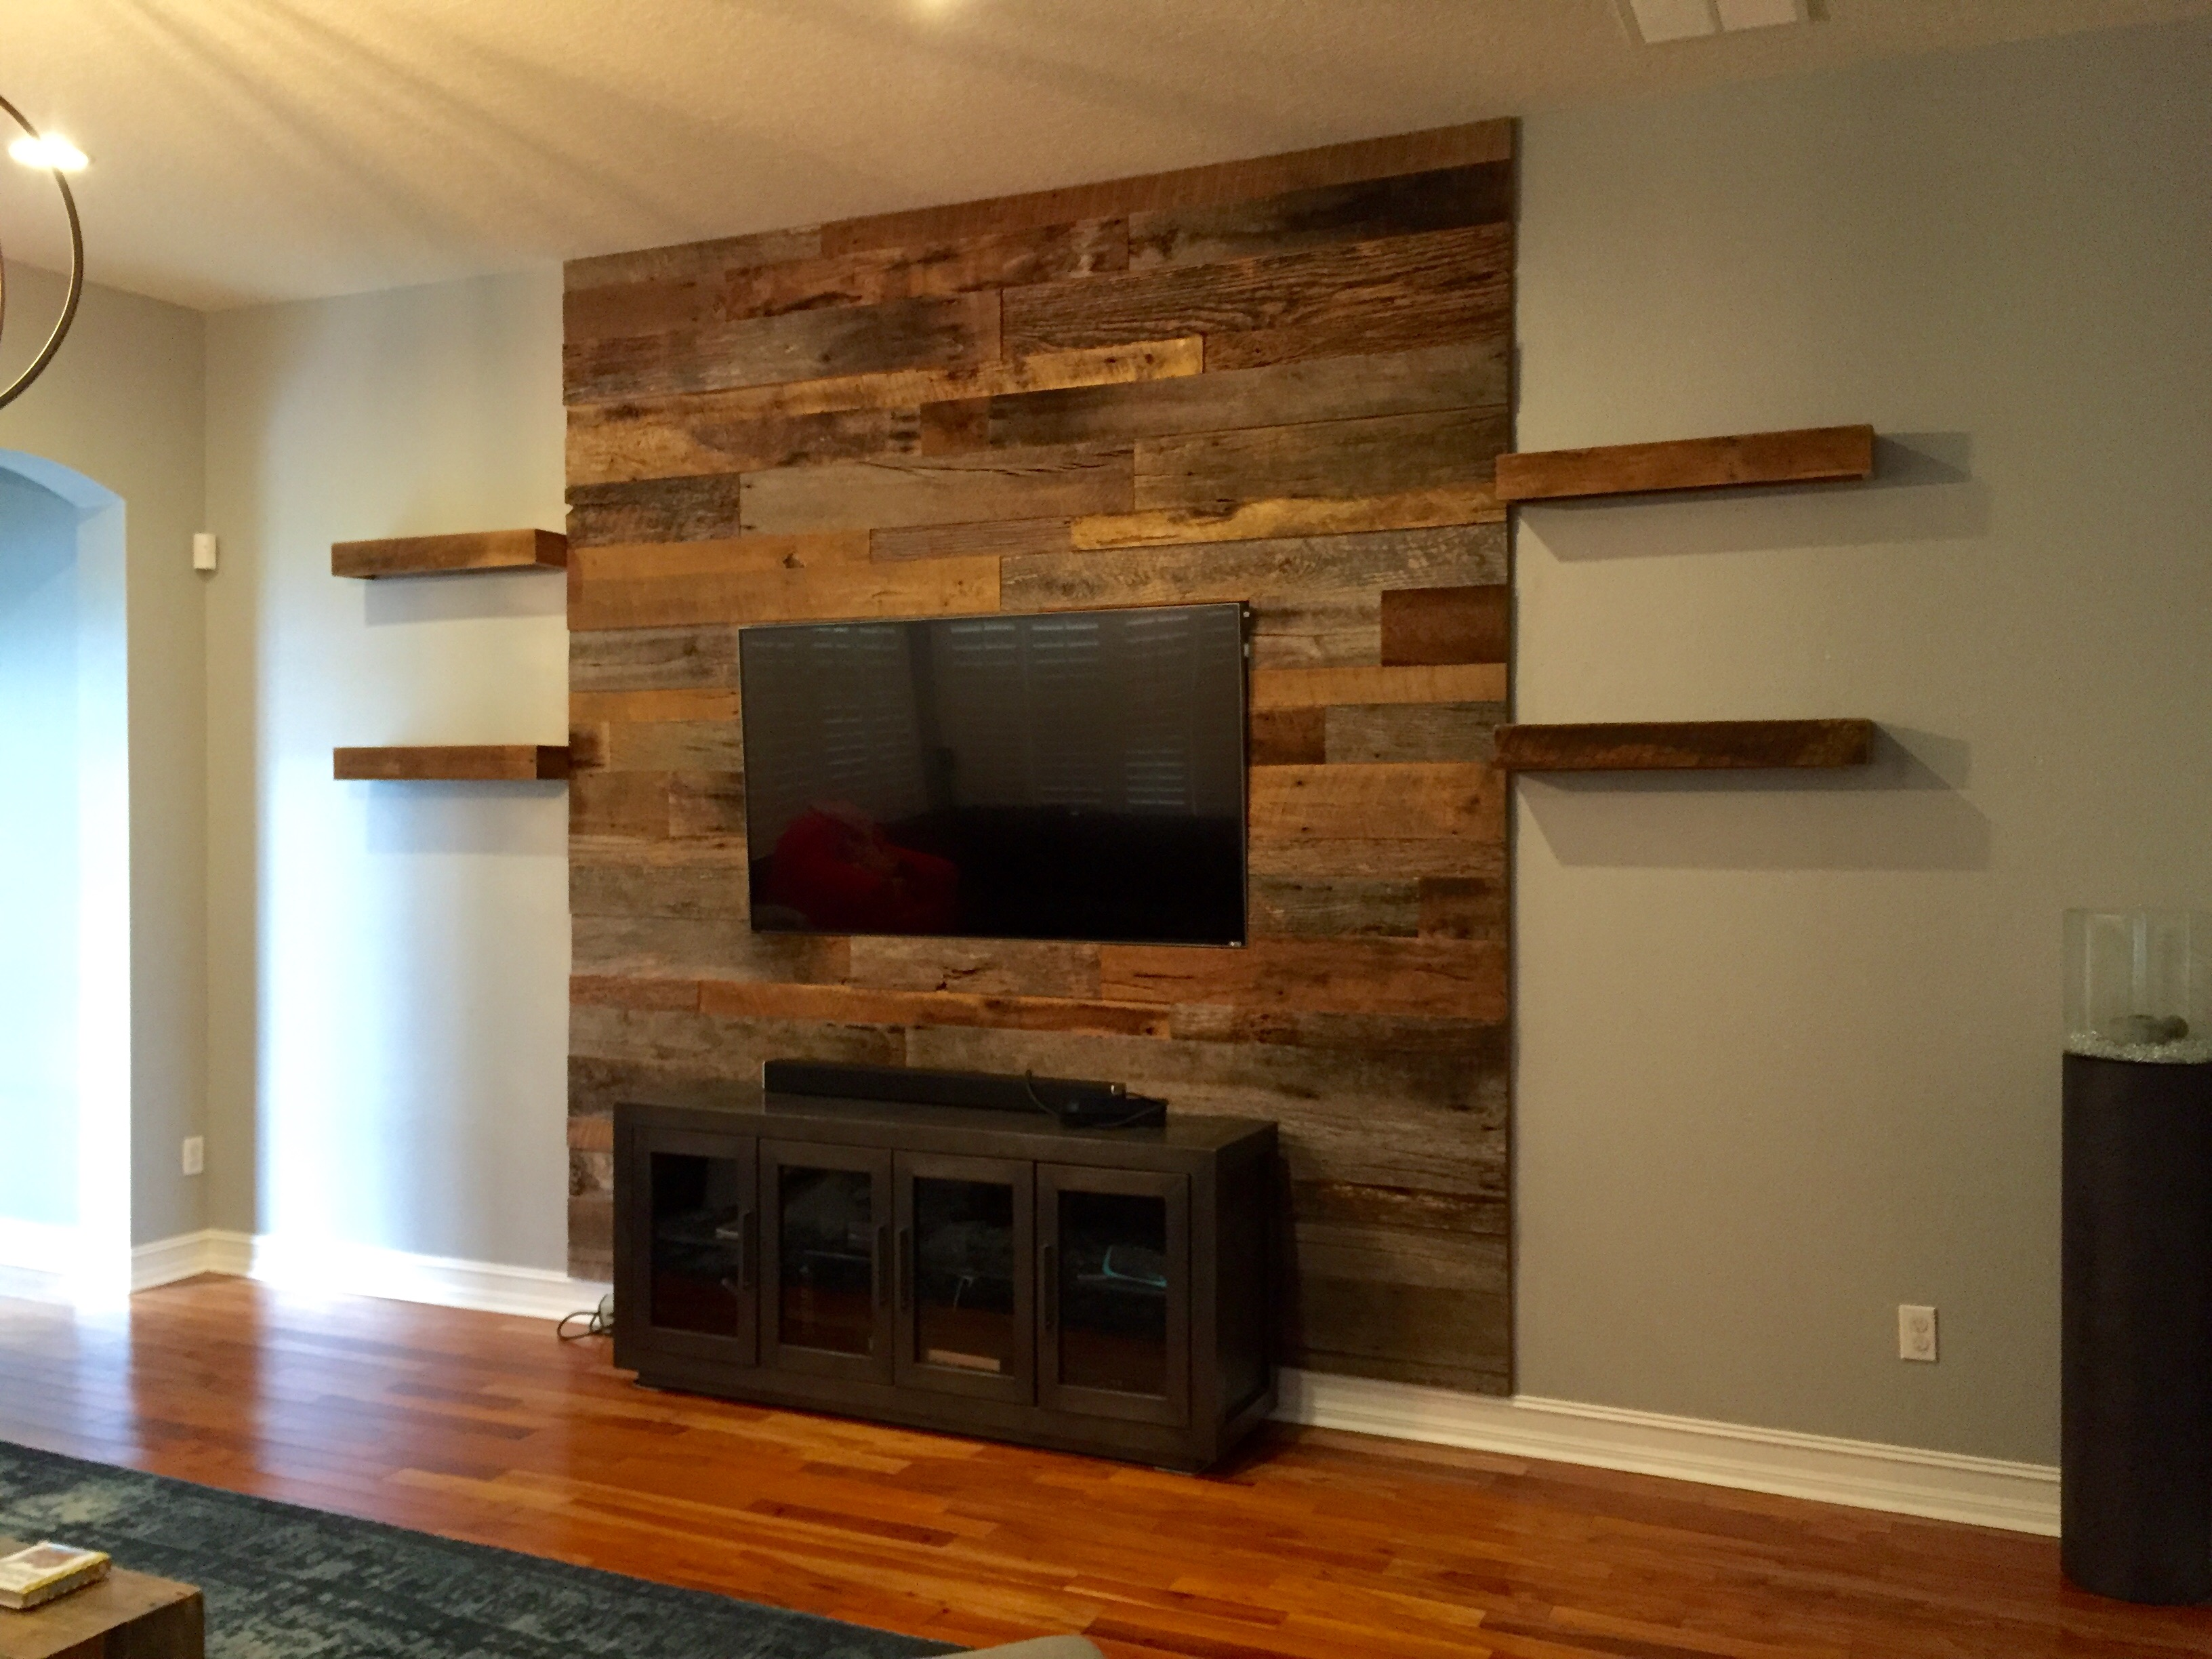 for reclaimed wall il paneling wood barns fullxfull listing zoom walls barn